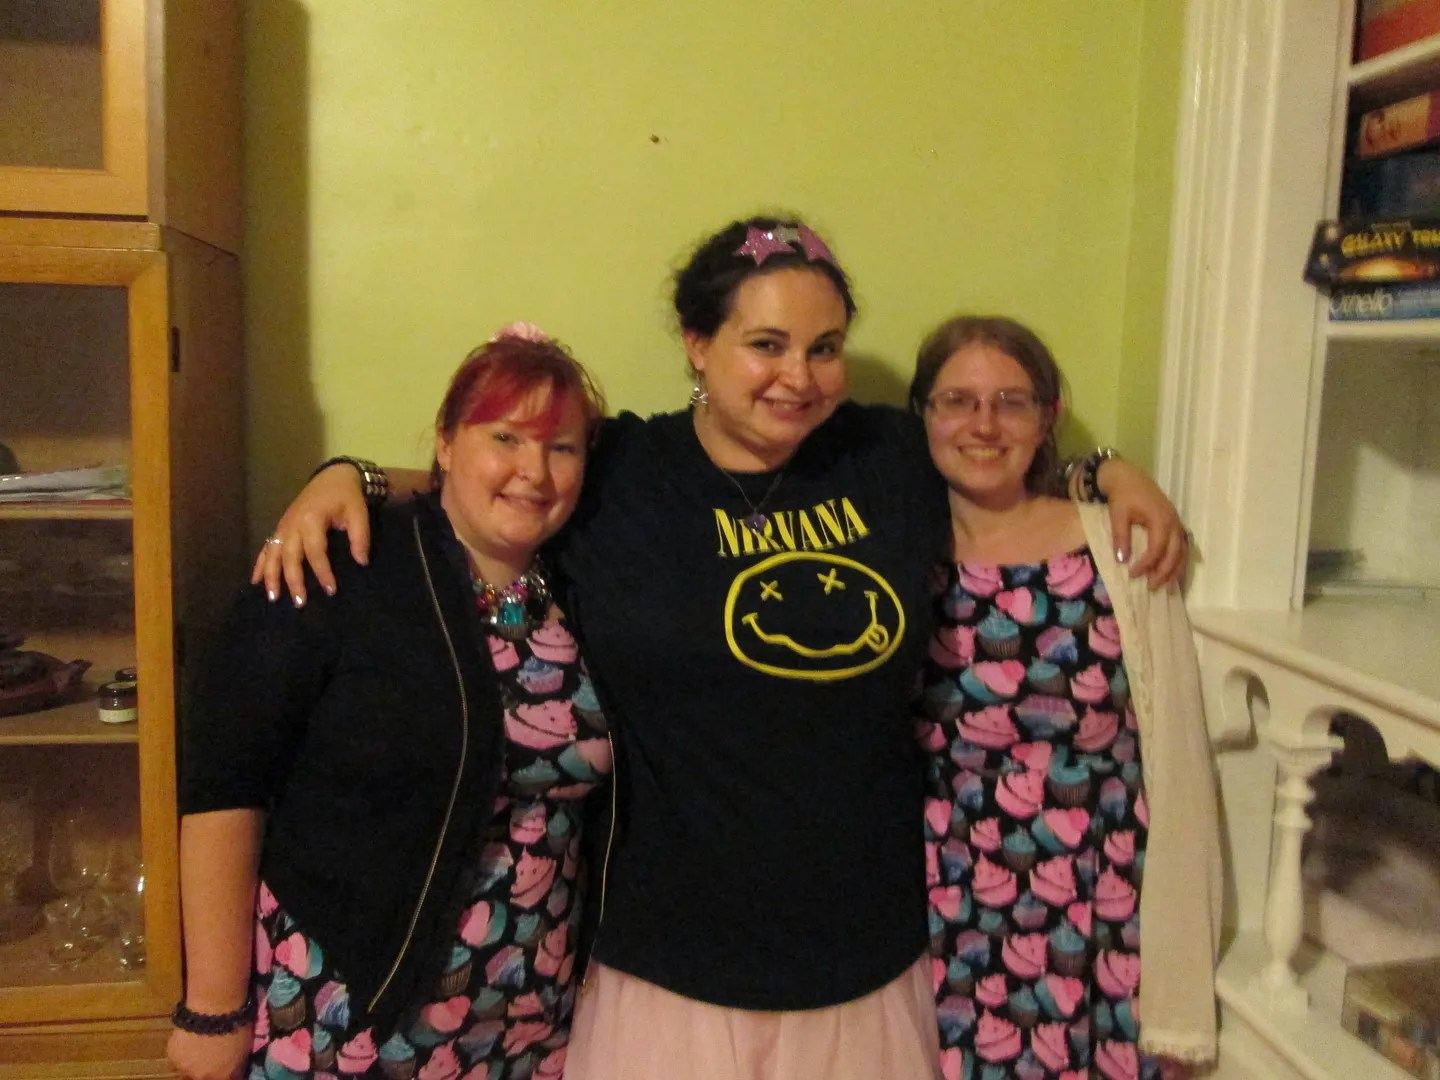 me wearing nirvana shirt and tutu with two friends wearing matching cupcake print dresses